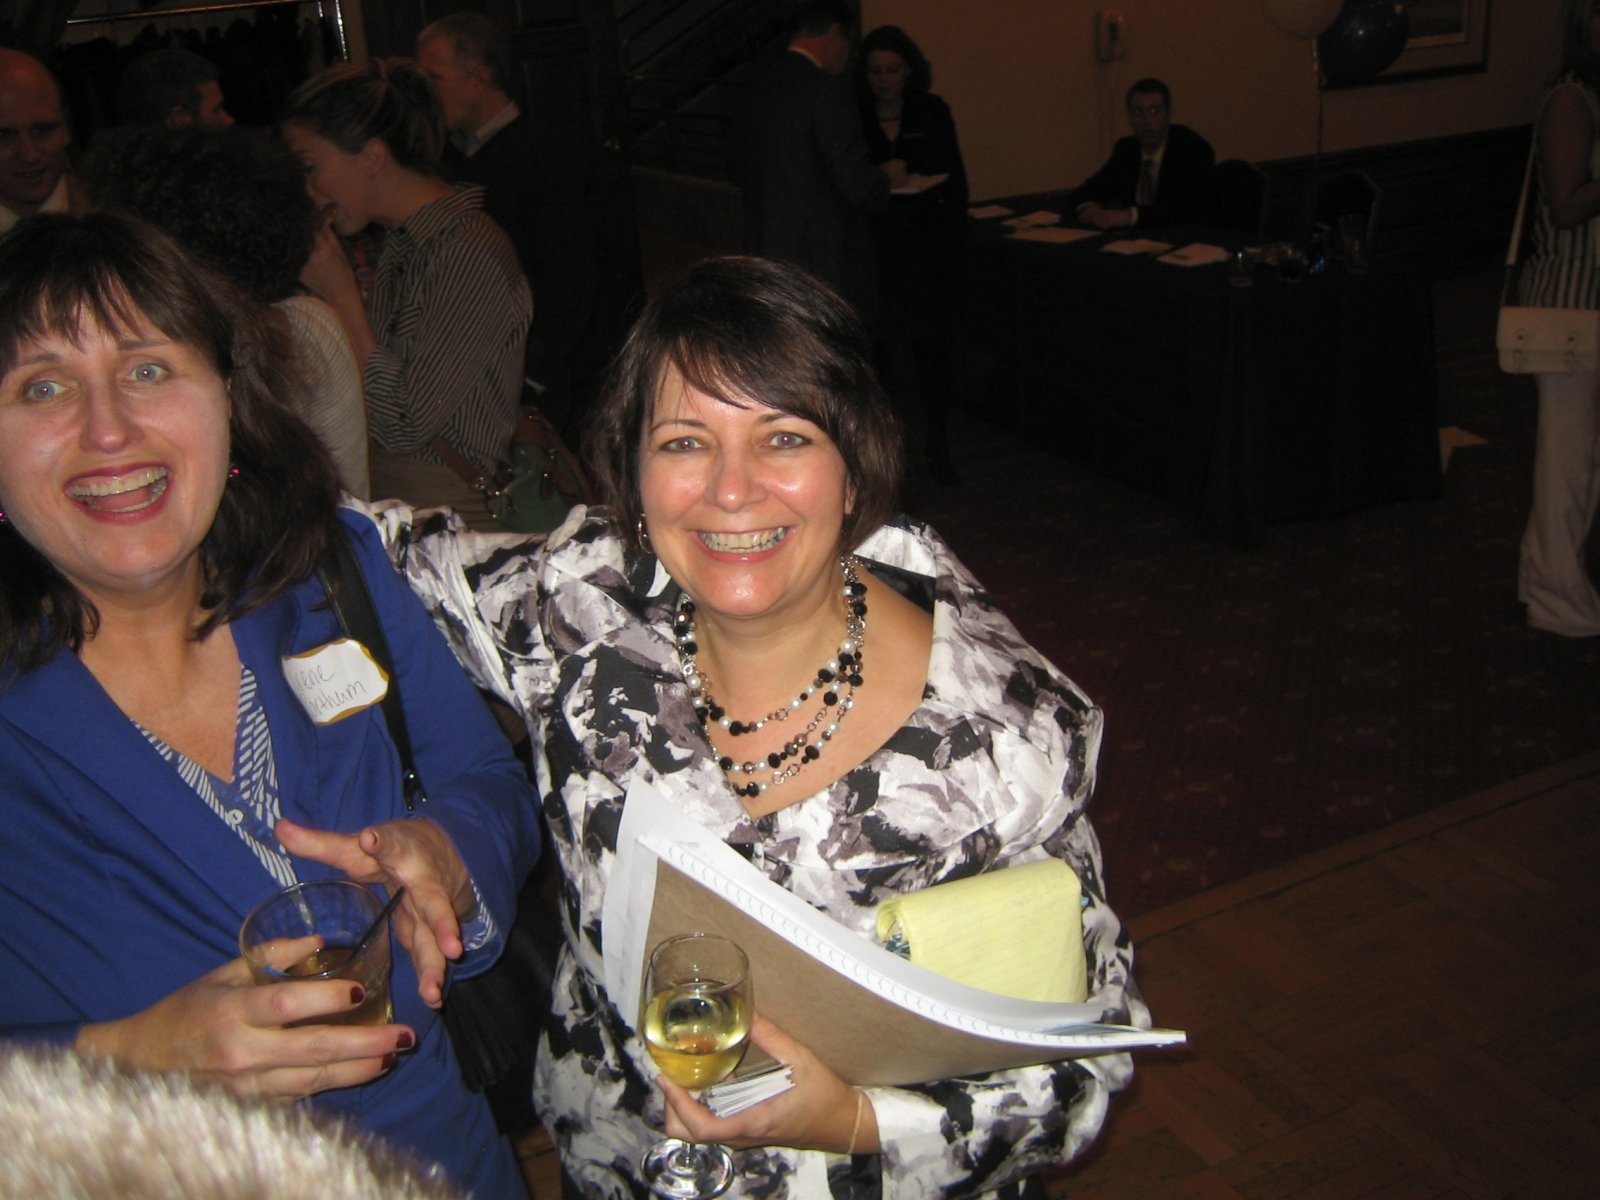 Irene Parthum (l) with Janet Protasiewicz.